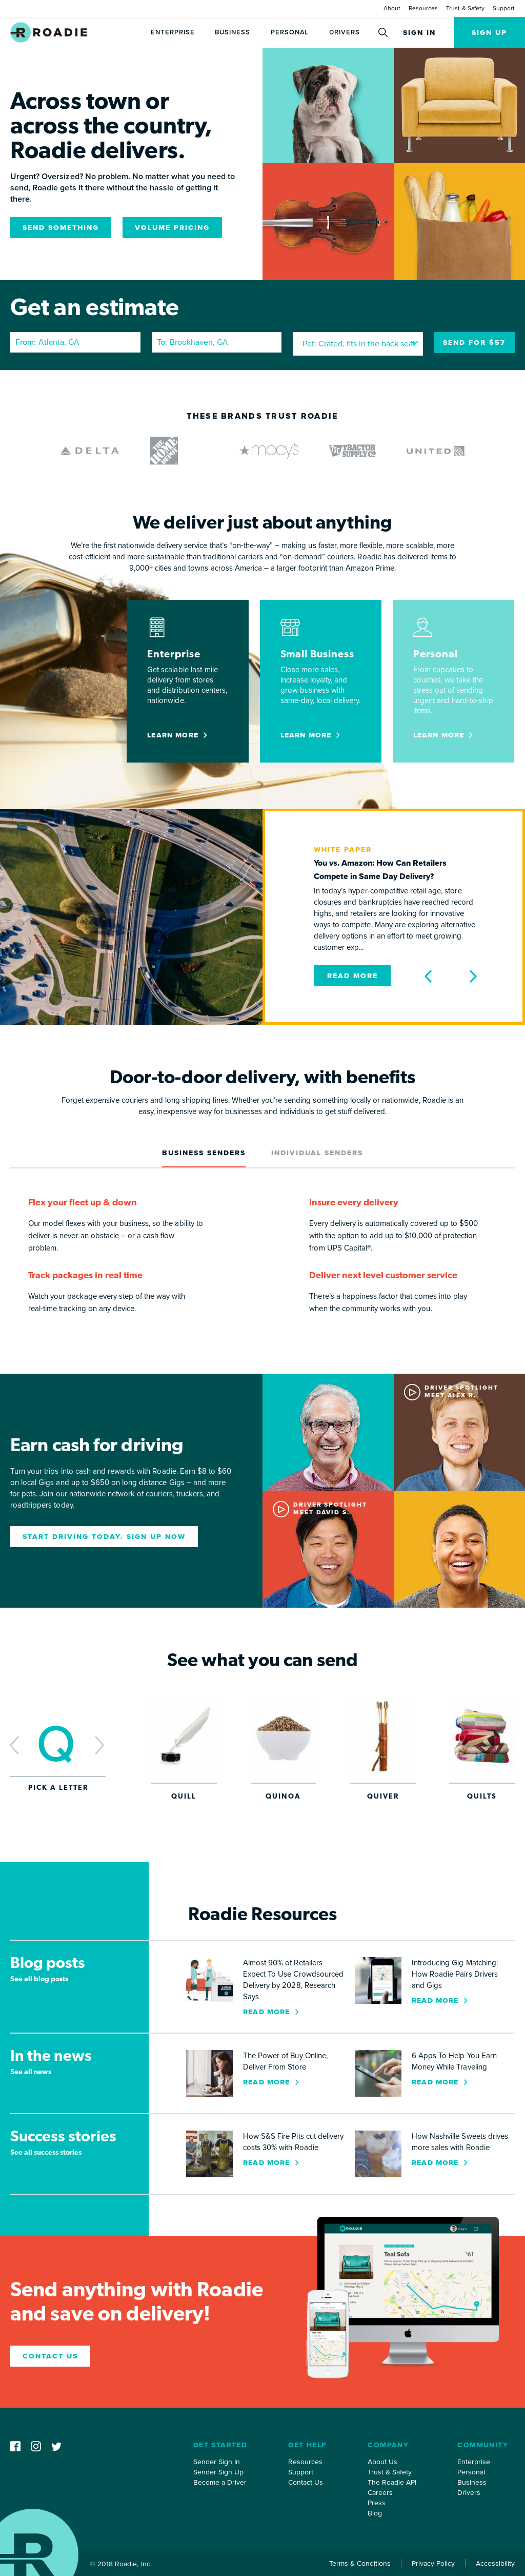 Roadie Competitors, Revenue and Employees - Owler Company Profile